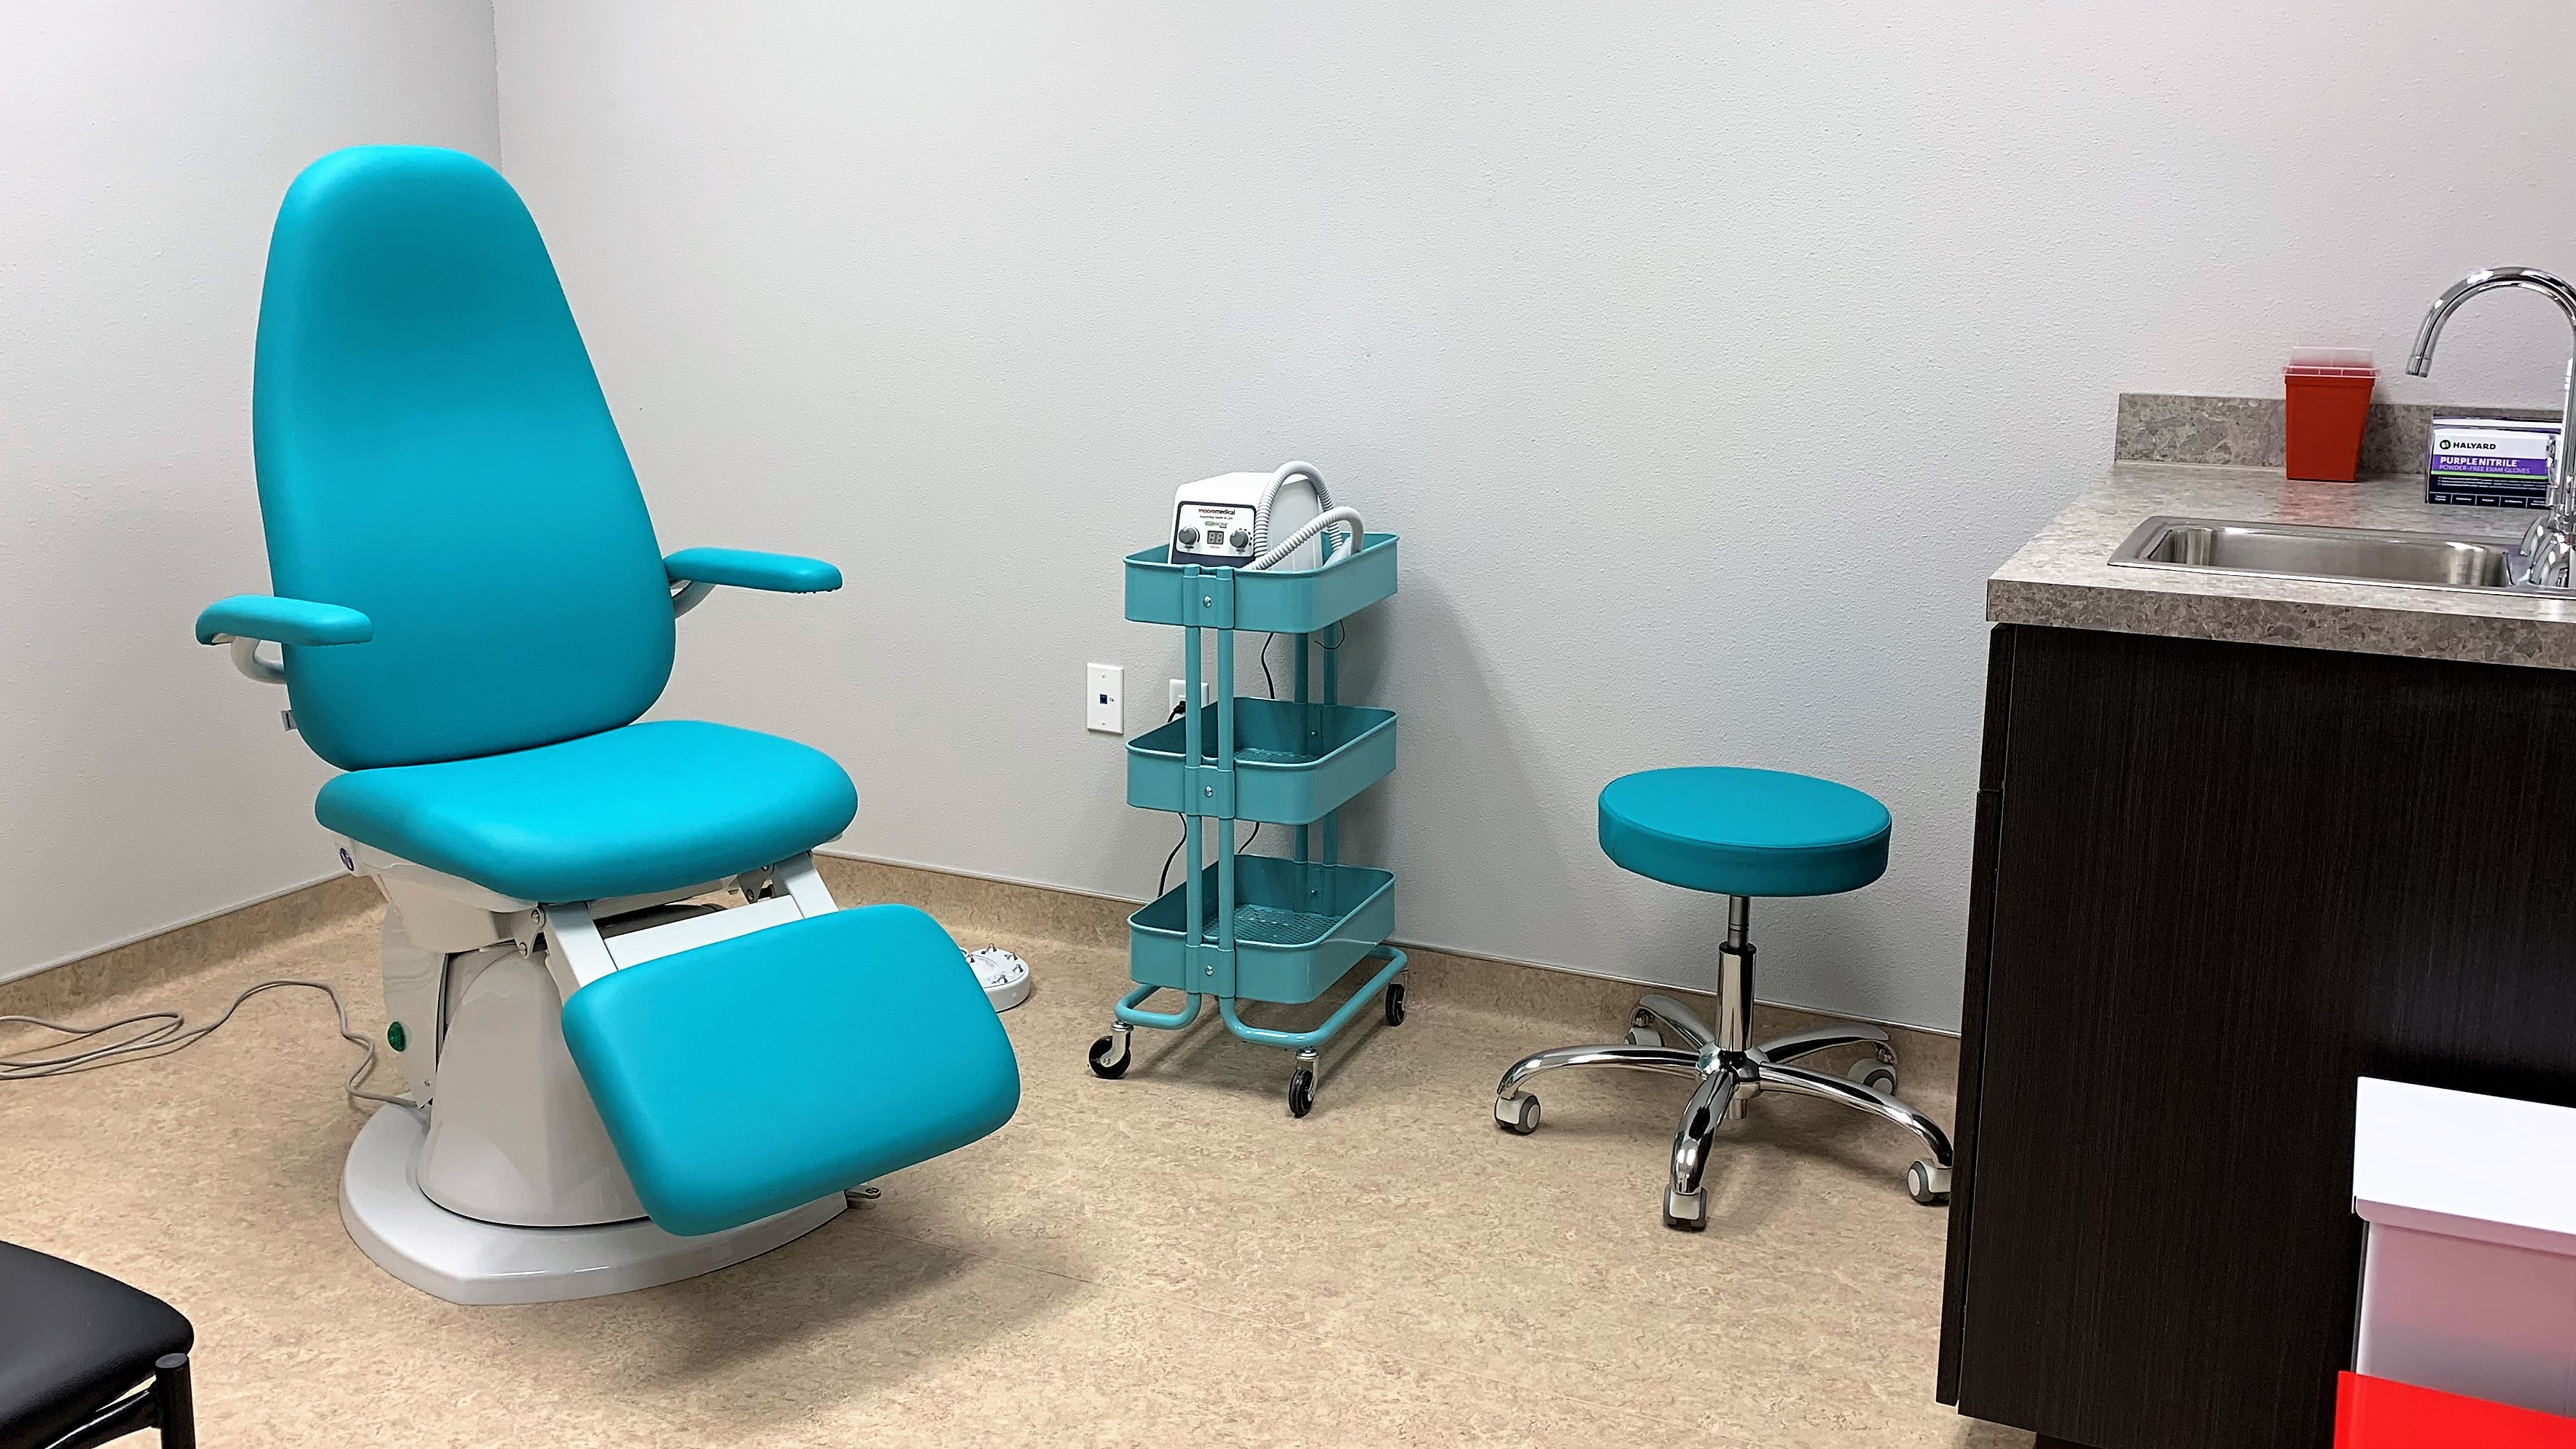 Exam Room 2 at Shoal Creek Foot & Ankle Center